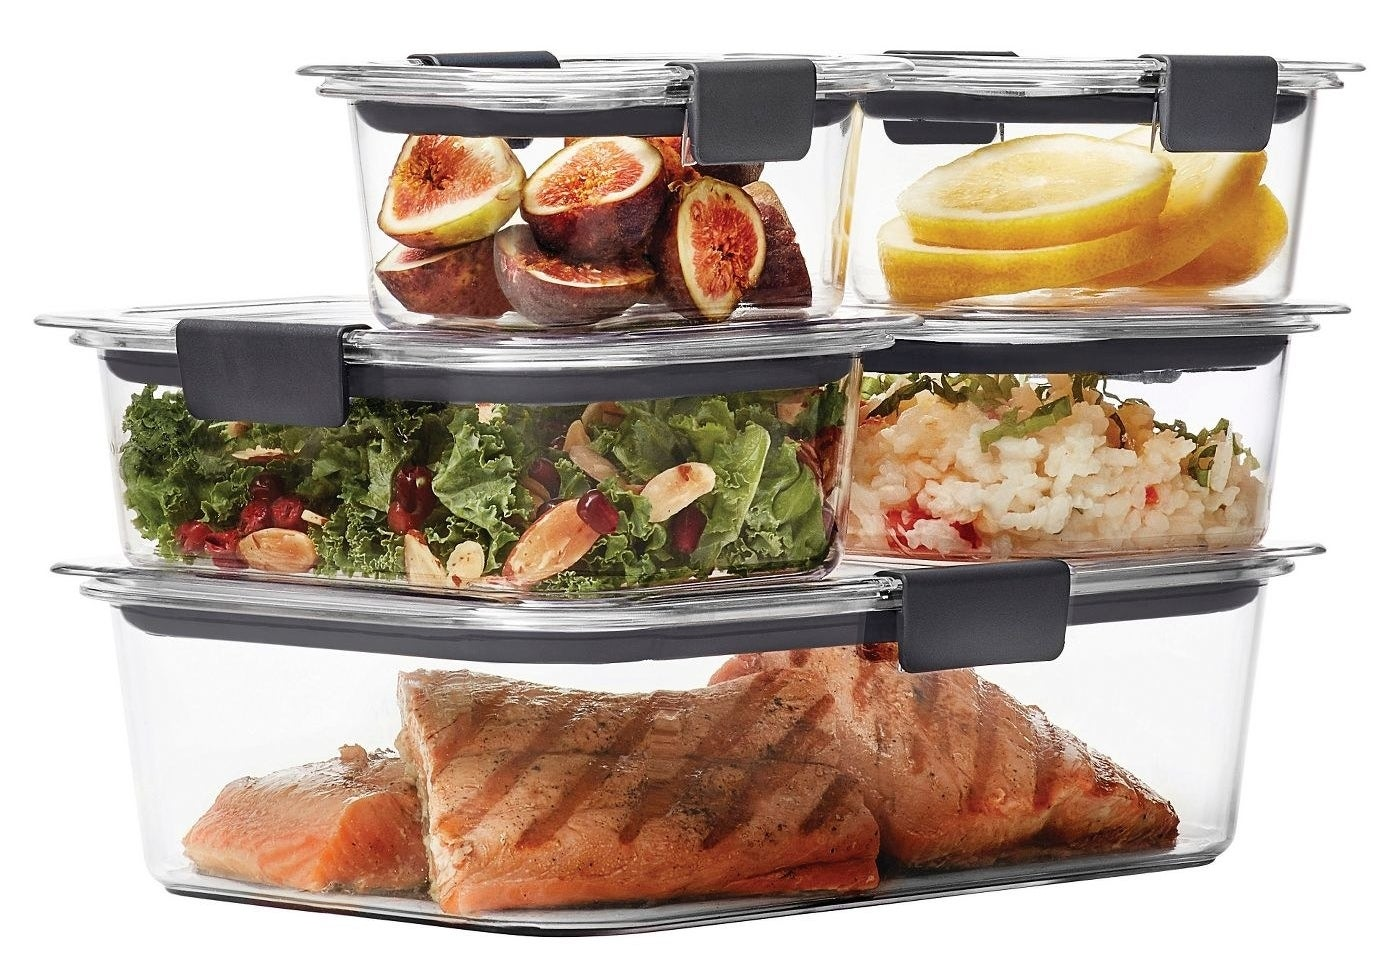 A 10-piece set of dishware with food in it